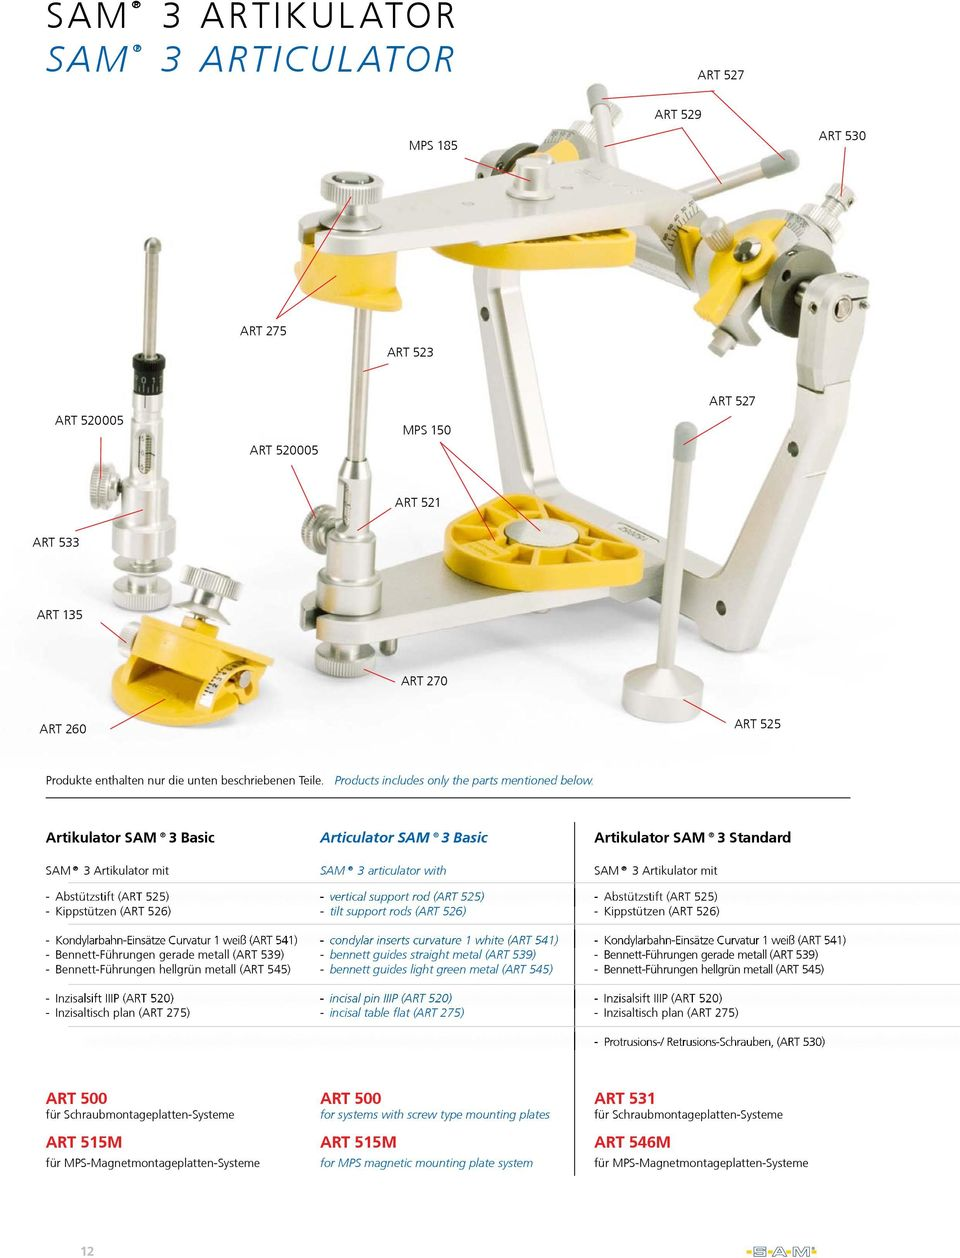 Artikulator SAM 3 Basic SAM 3 Artikulator mit - Abstützstift (ART 525) - Kippstützen (ART 526) Articulator SAM 3 Basic SAM 3 articulator with - verticalsupportrod(art525) rod -